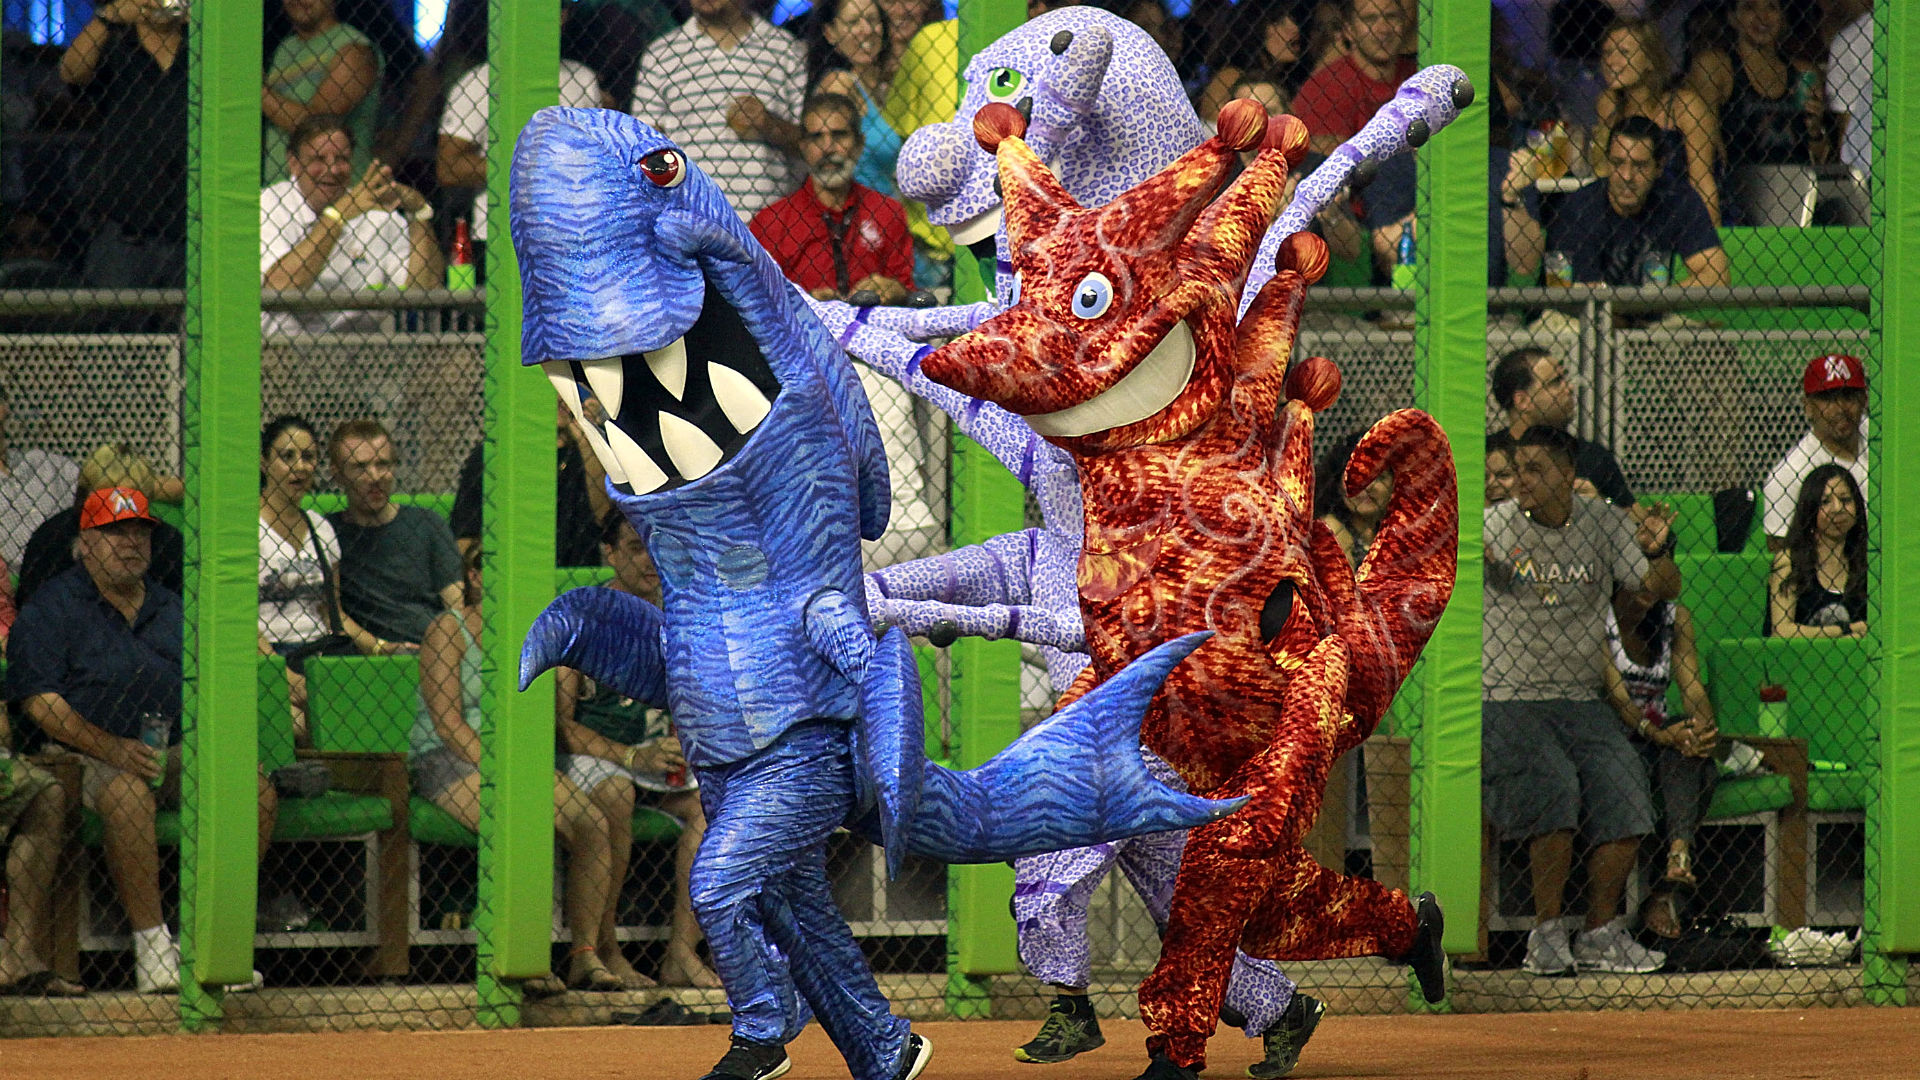 Marlins Great Sea Race mascots